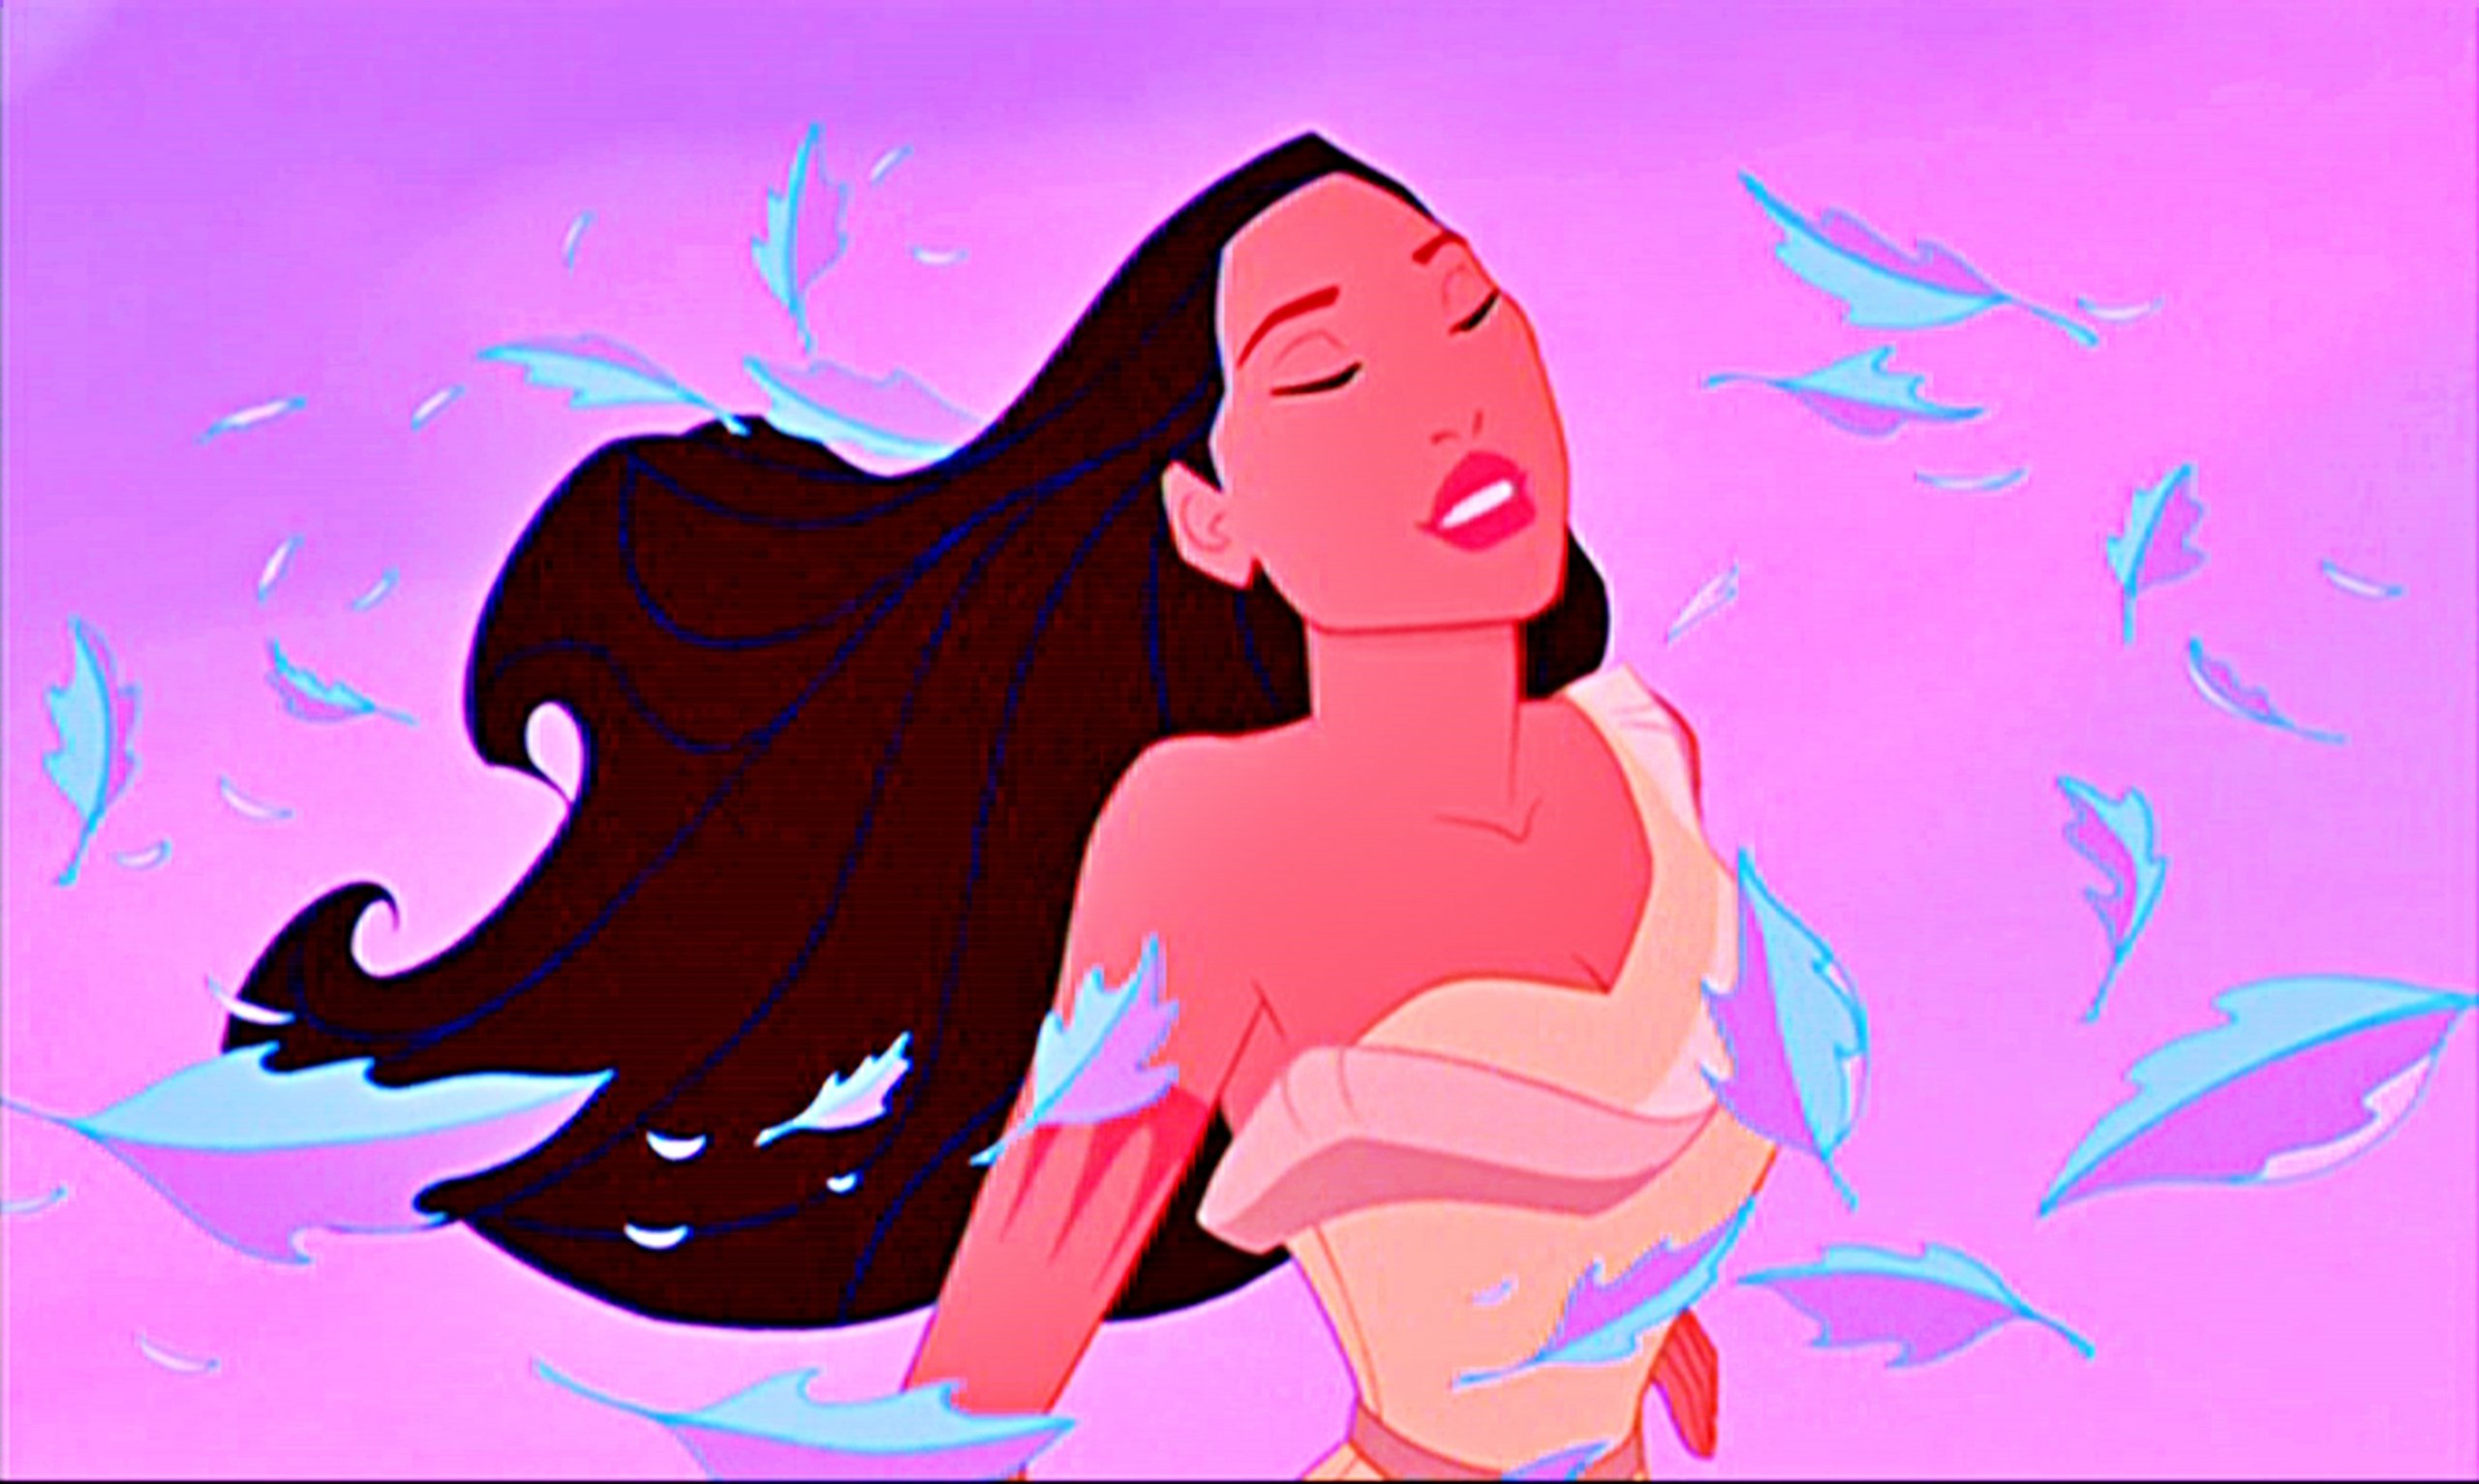 Rule 34 disney princesses pocahontas adult movie